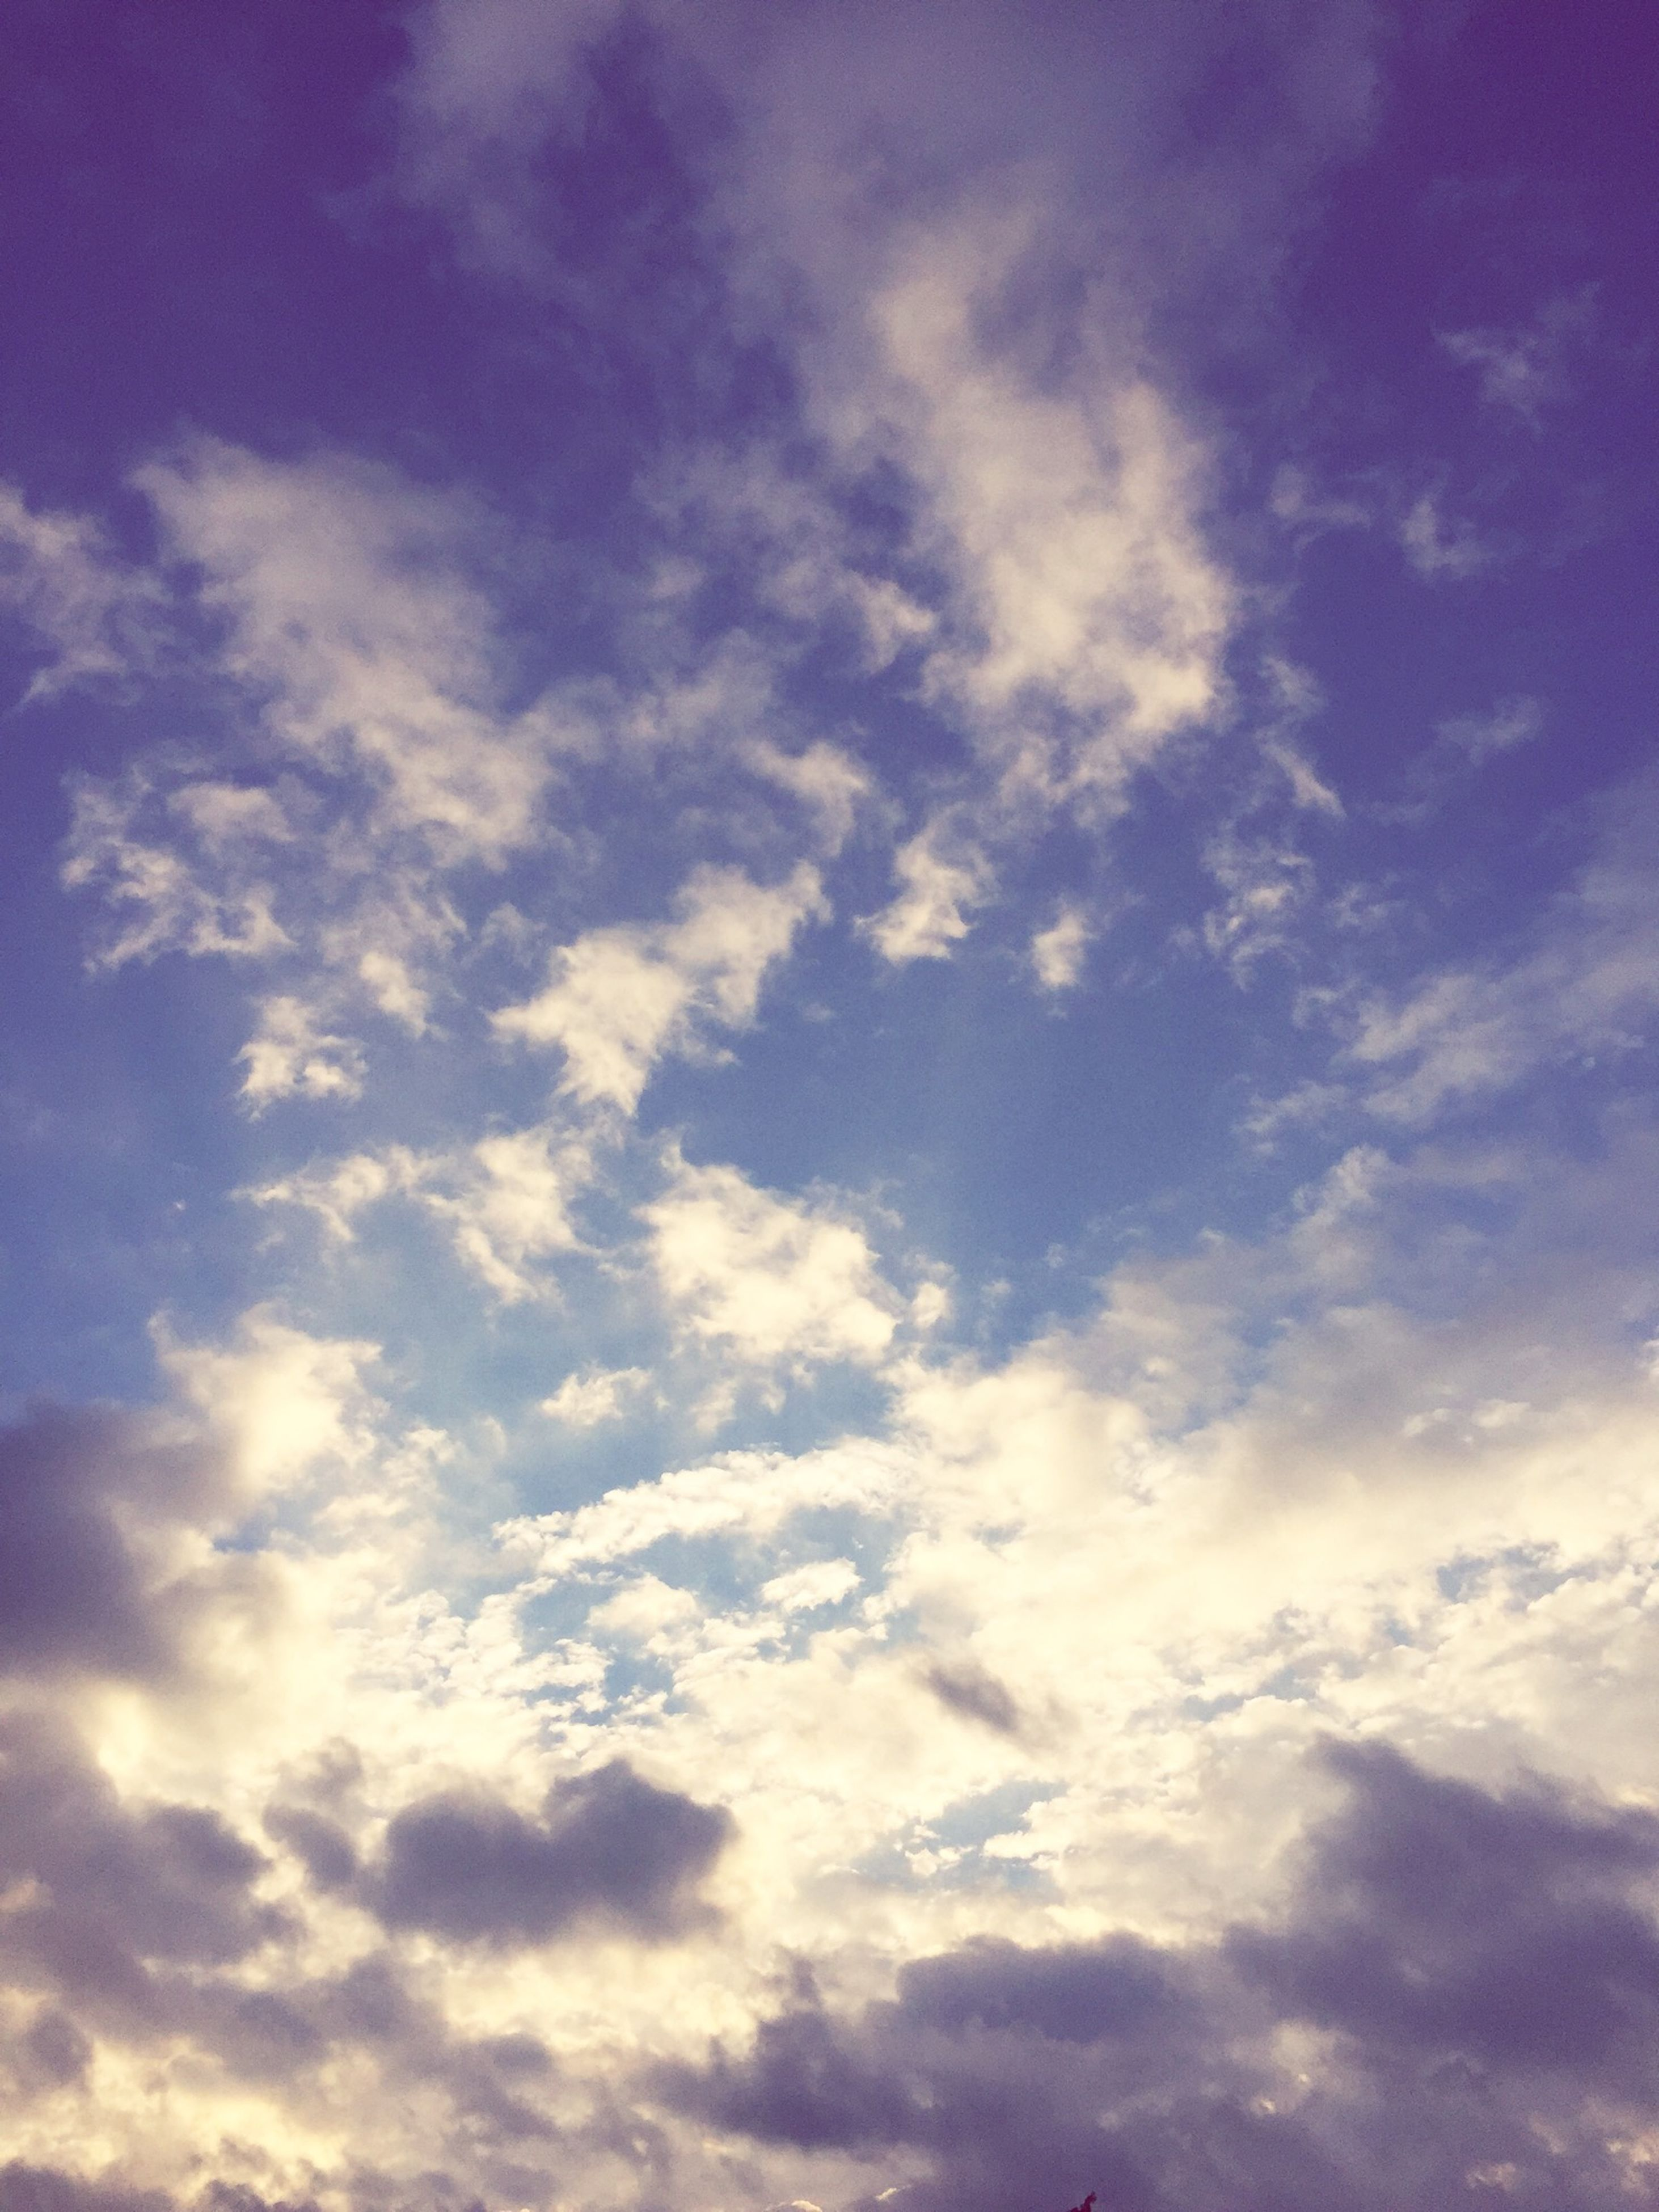 sky, cloud - sky, sky only, beauty in nature, tranquility, low angle view, scenics, tranquil scene, cloudscape, cloudy, nature, backgrounds, cloud, full frame, blue, idyllic, majestic, weather, outdoors, white color